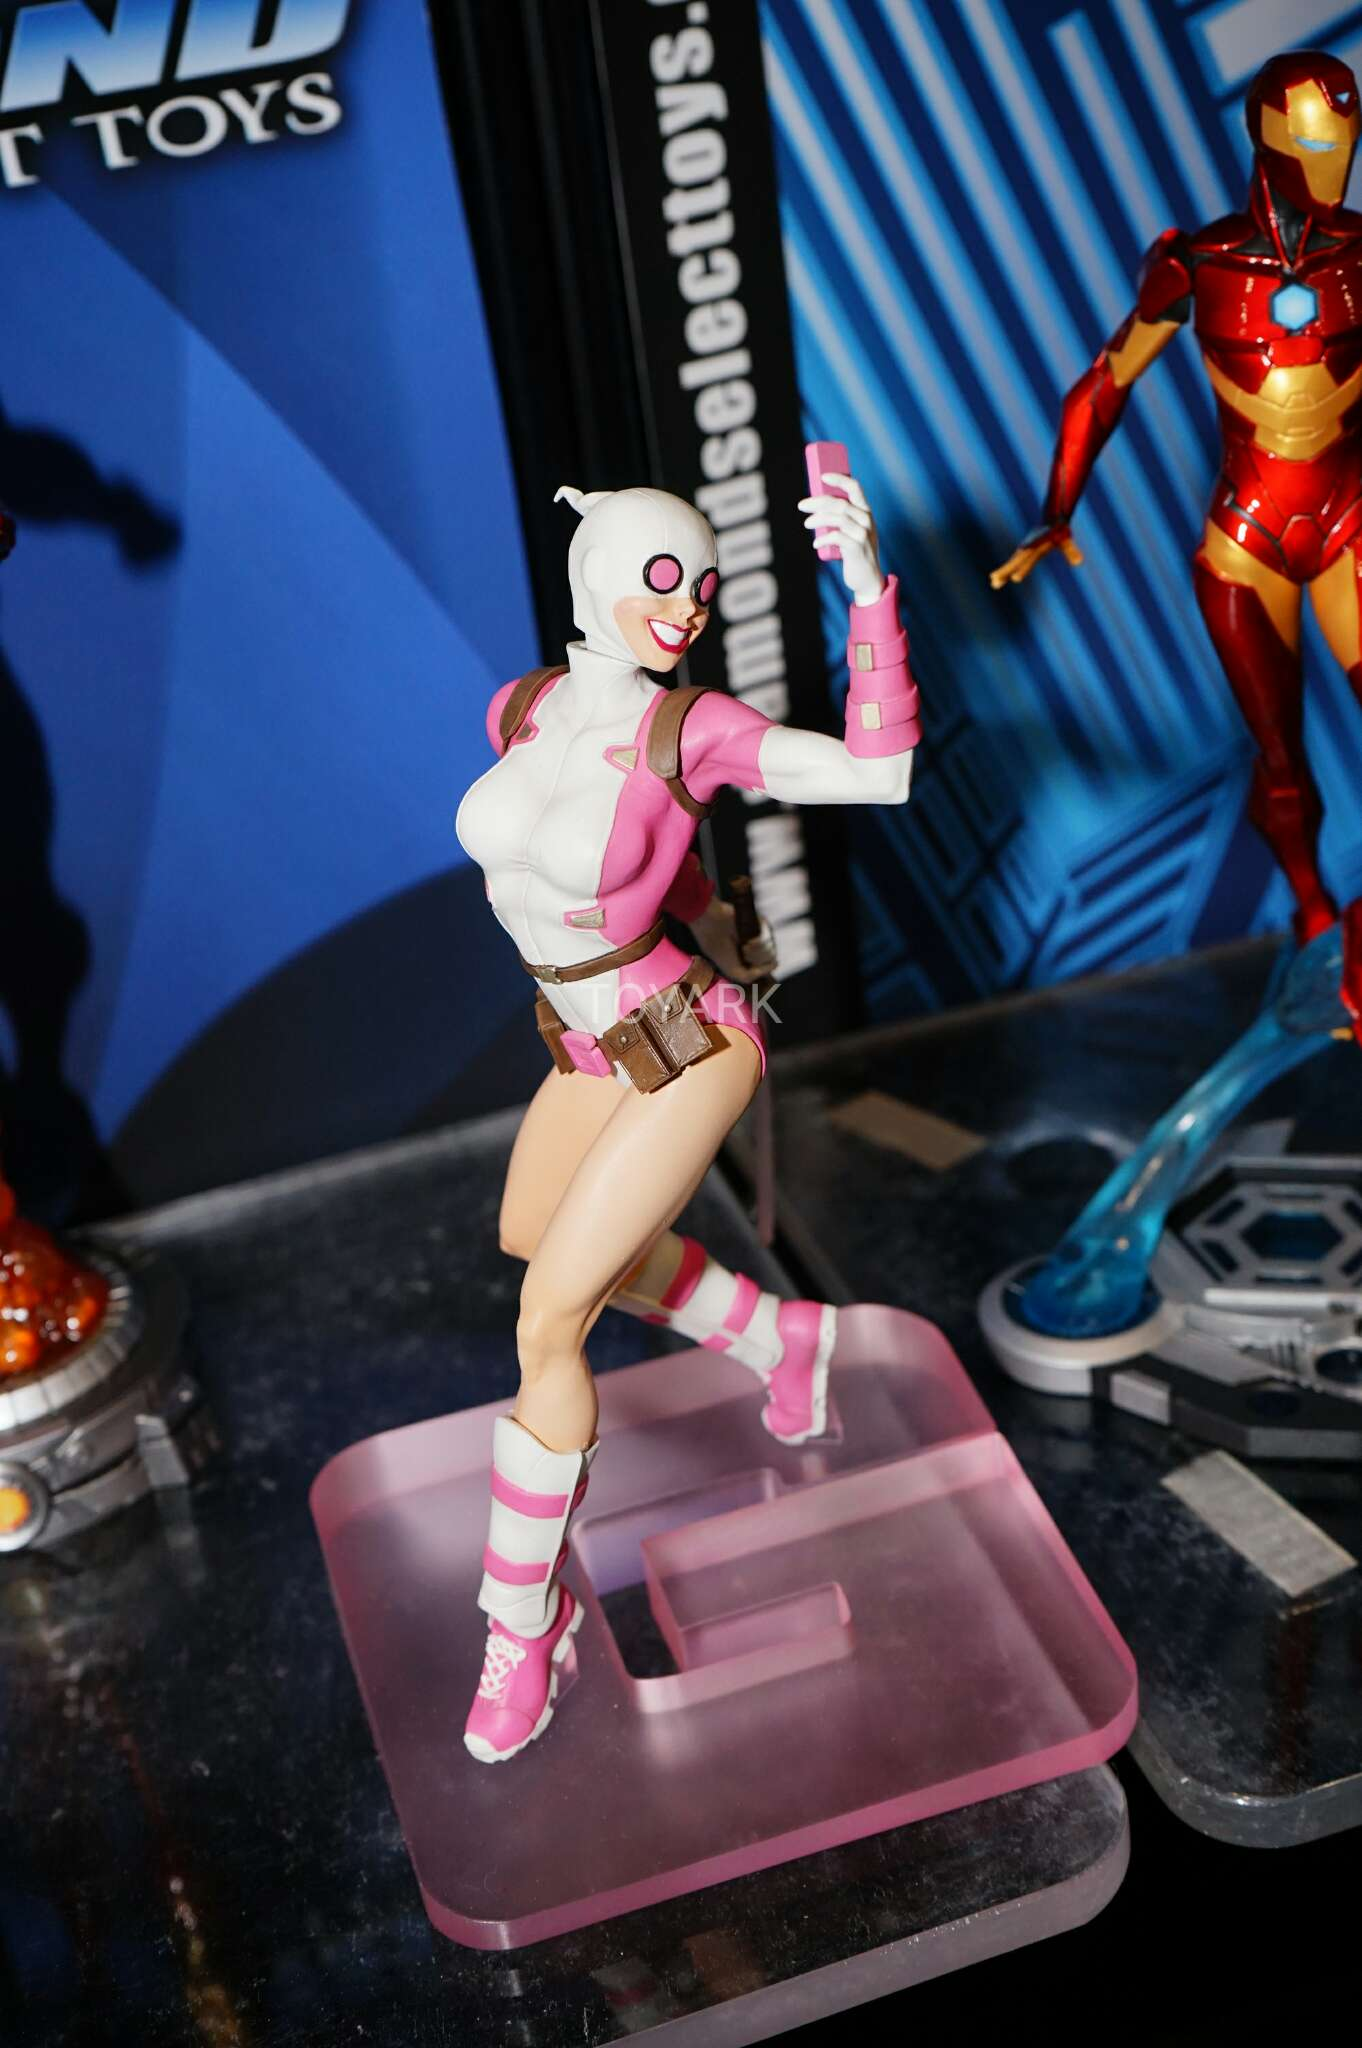 Toy Fair 2017: As melhores fotos do evento - Blog Farofeiros - Diamond Select - Gewnpool